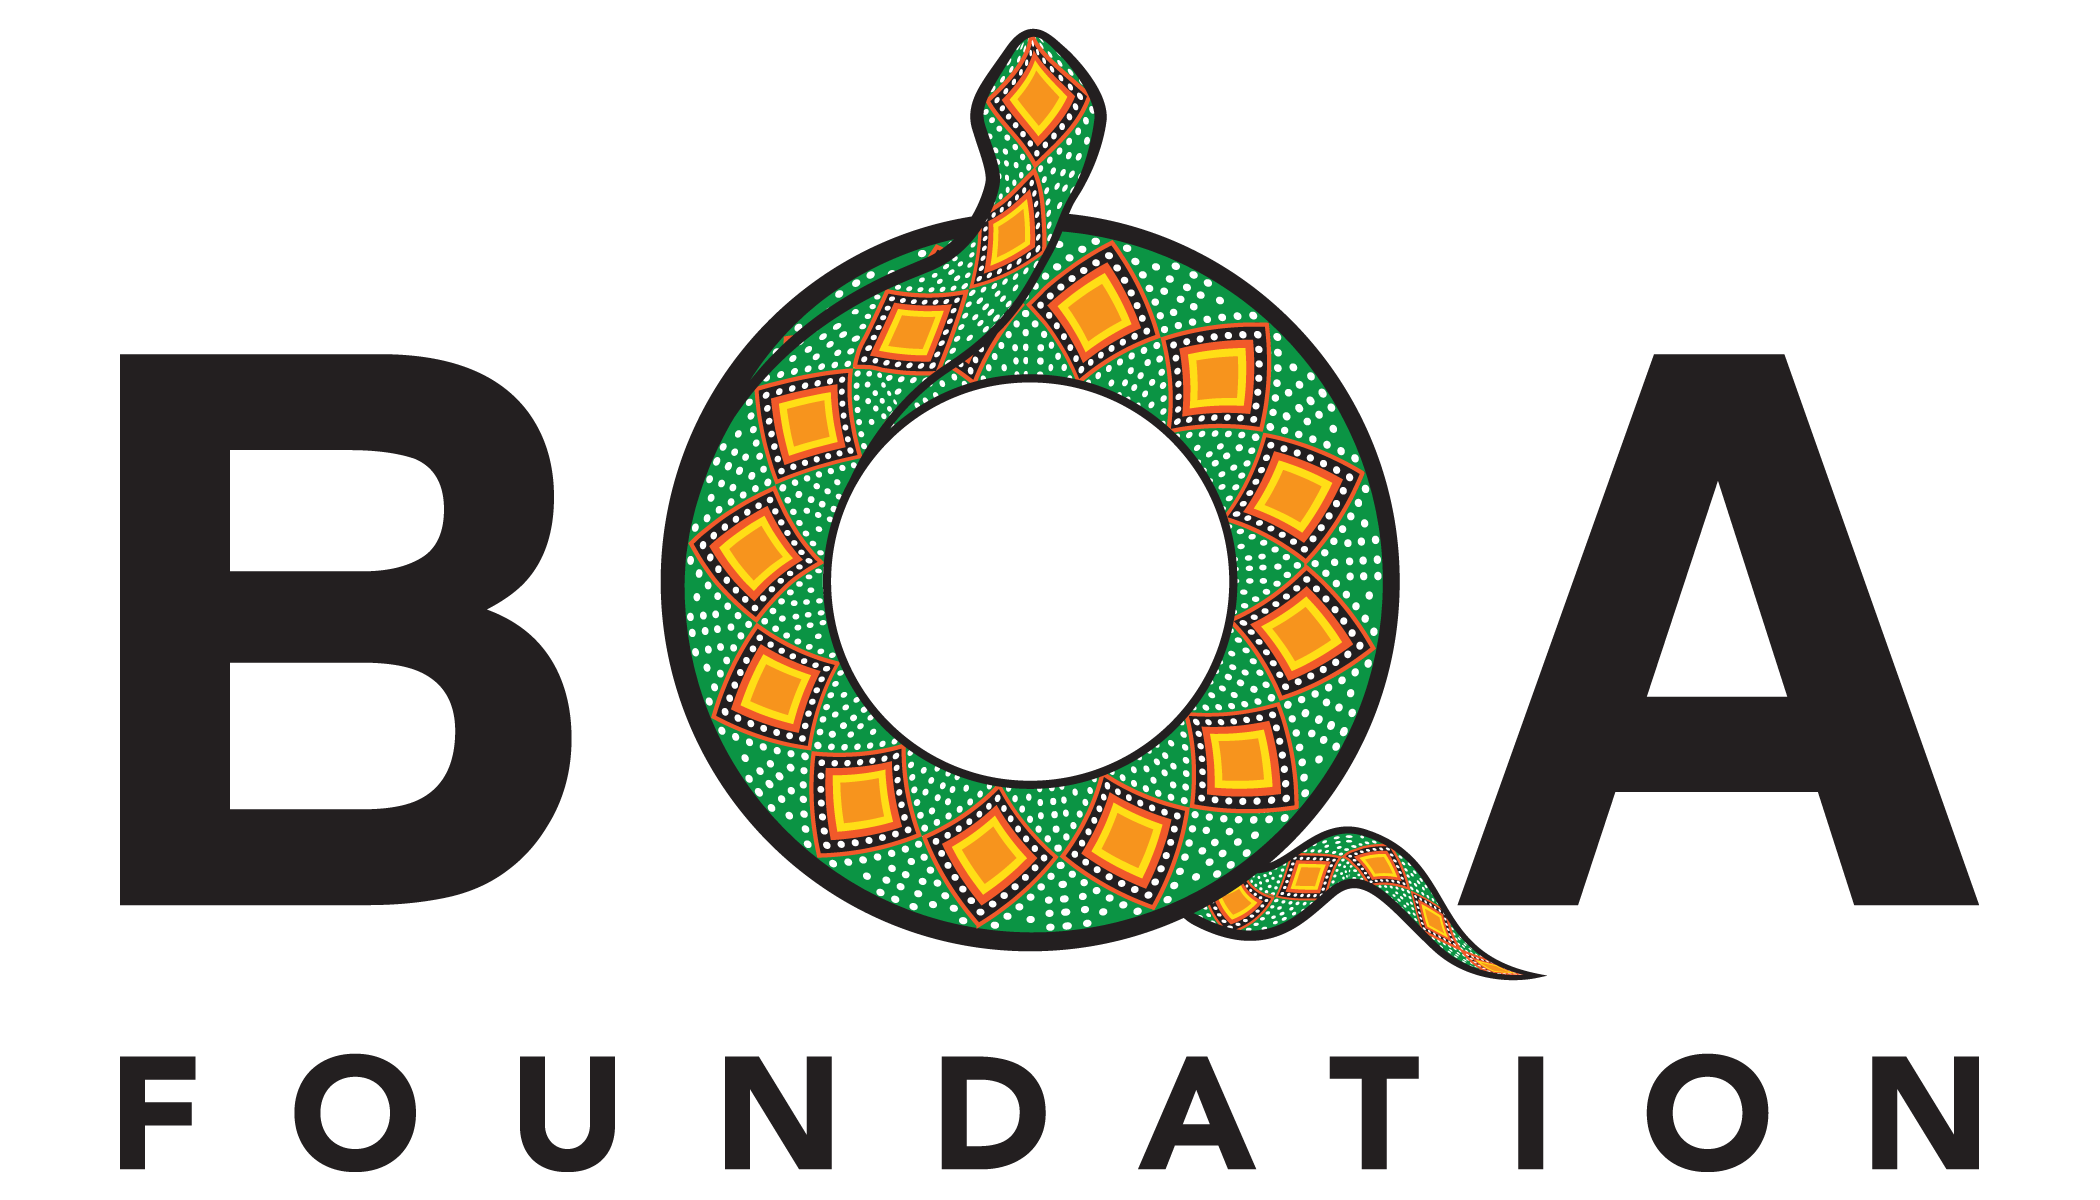 - Make a donation to the boa Foundation to support aniwa gathering or many of the indigenous leaders projects